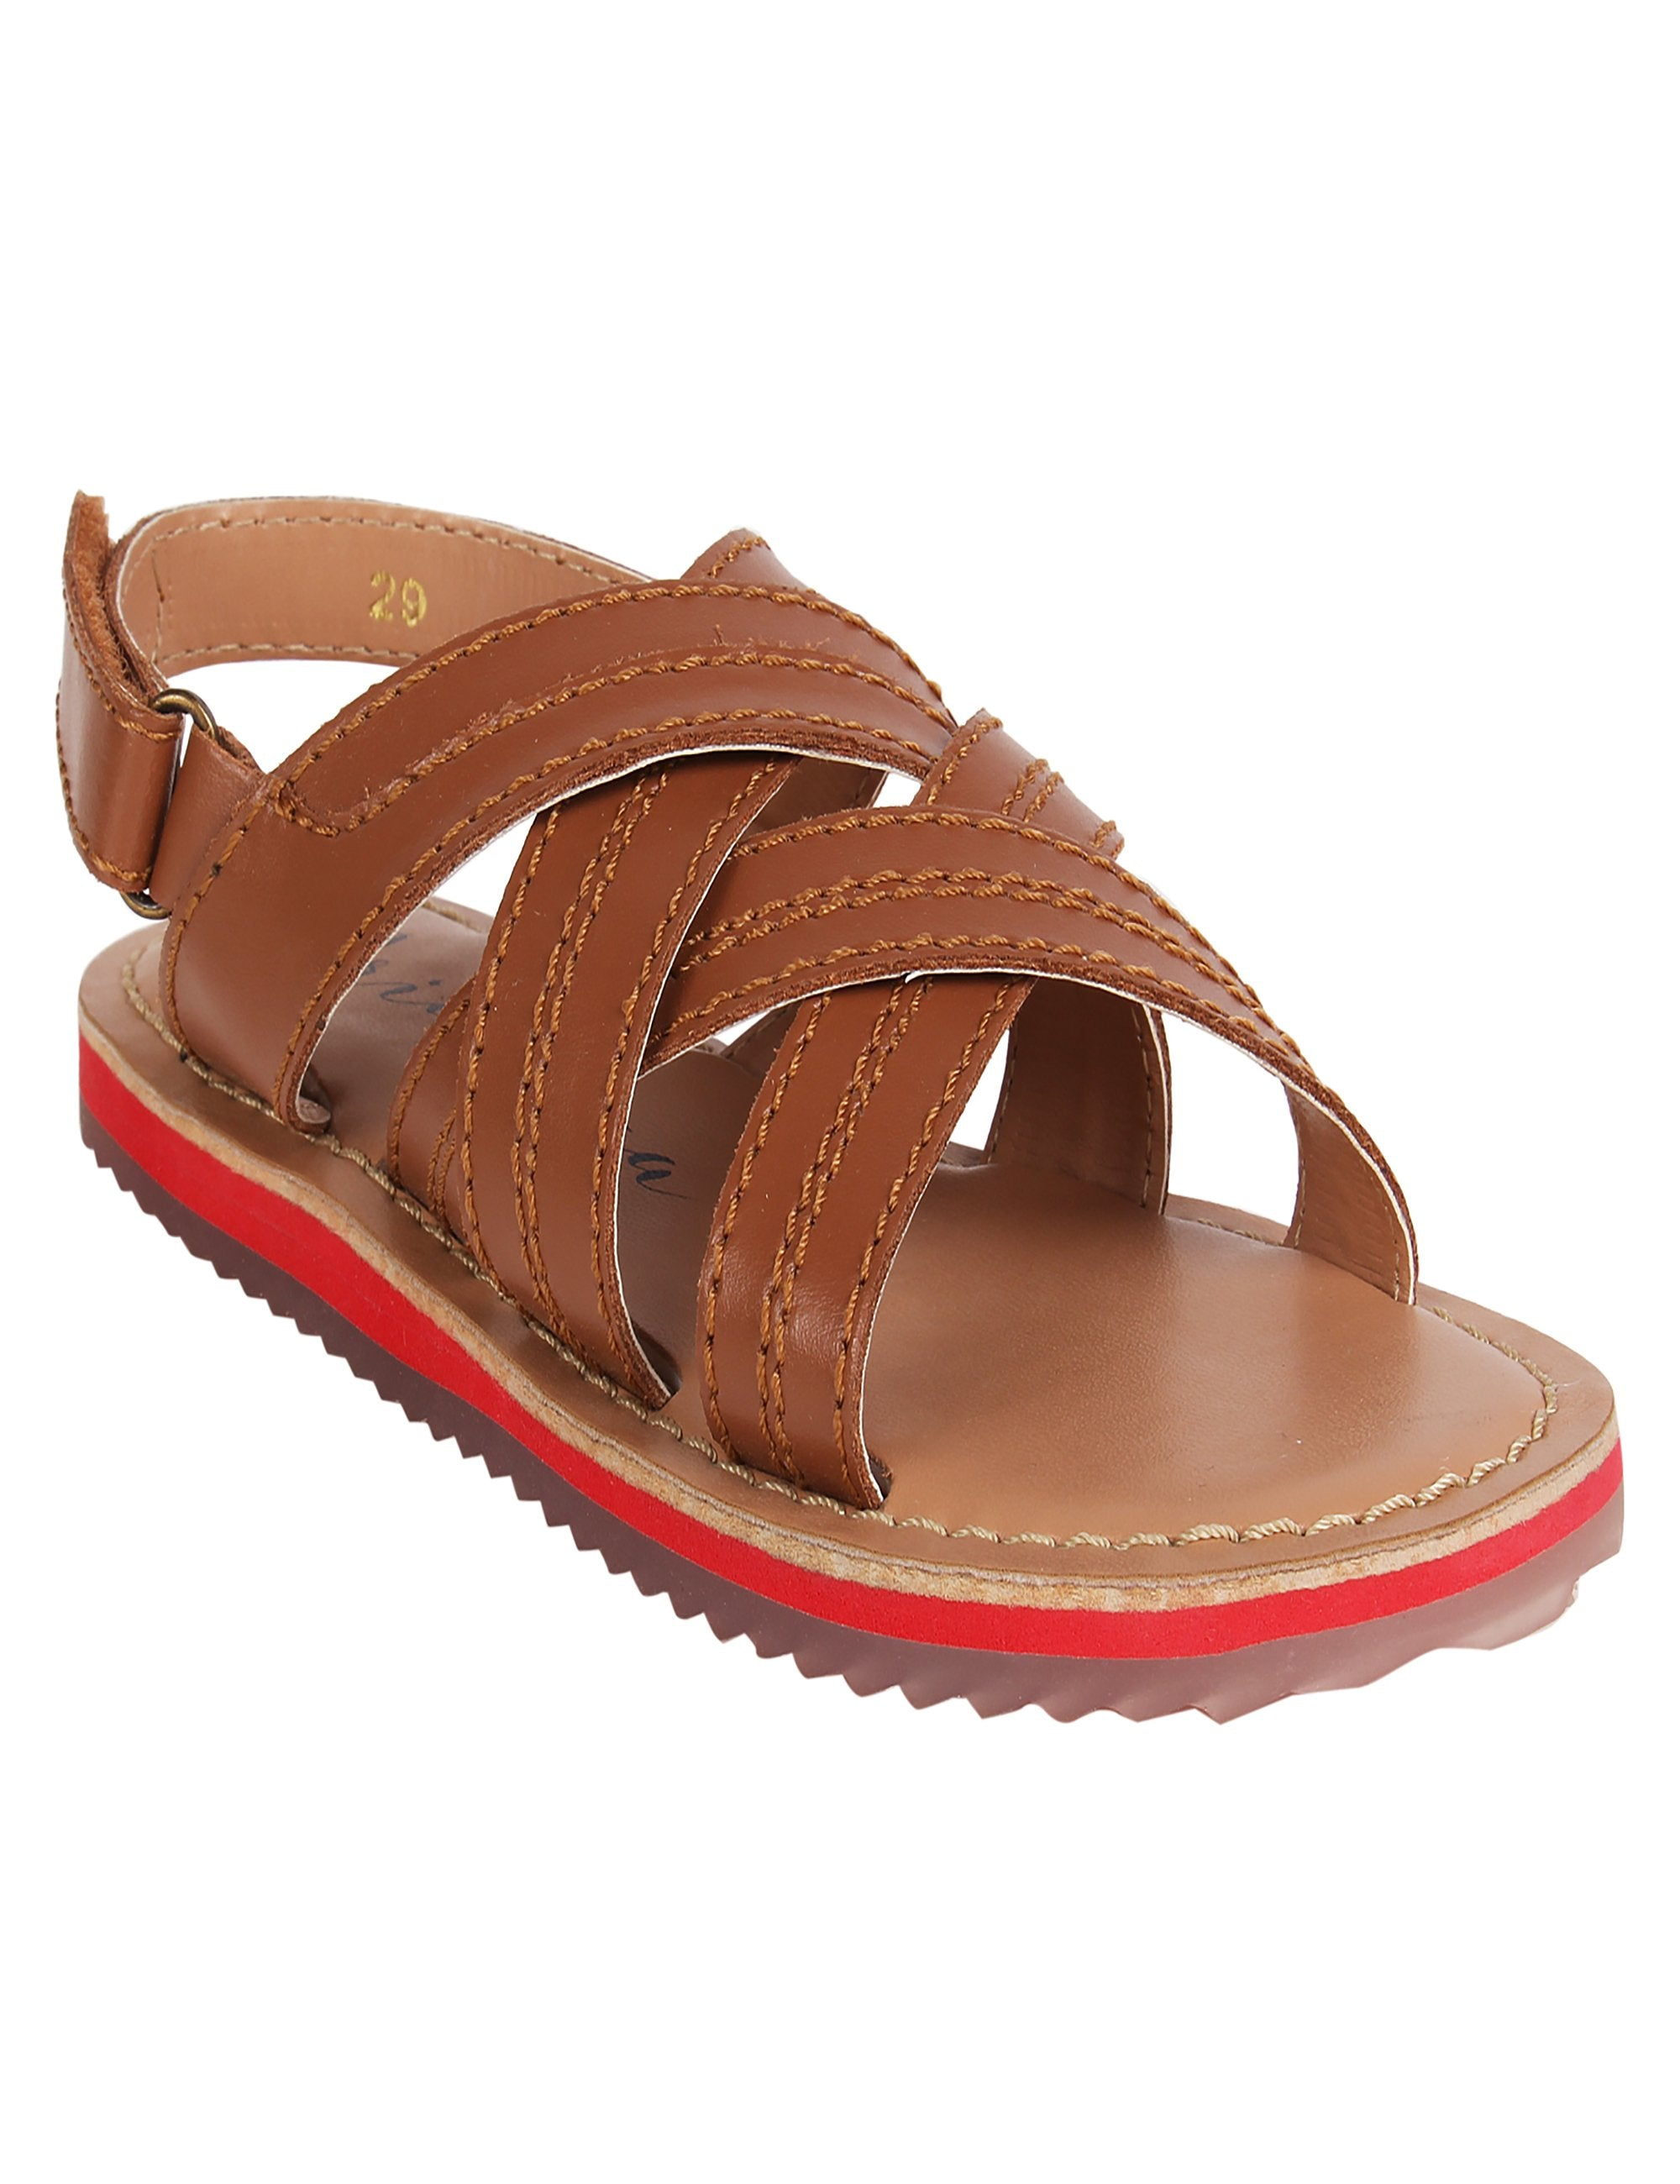 Criss Cross Flats in Brown Colour